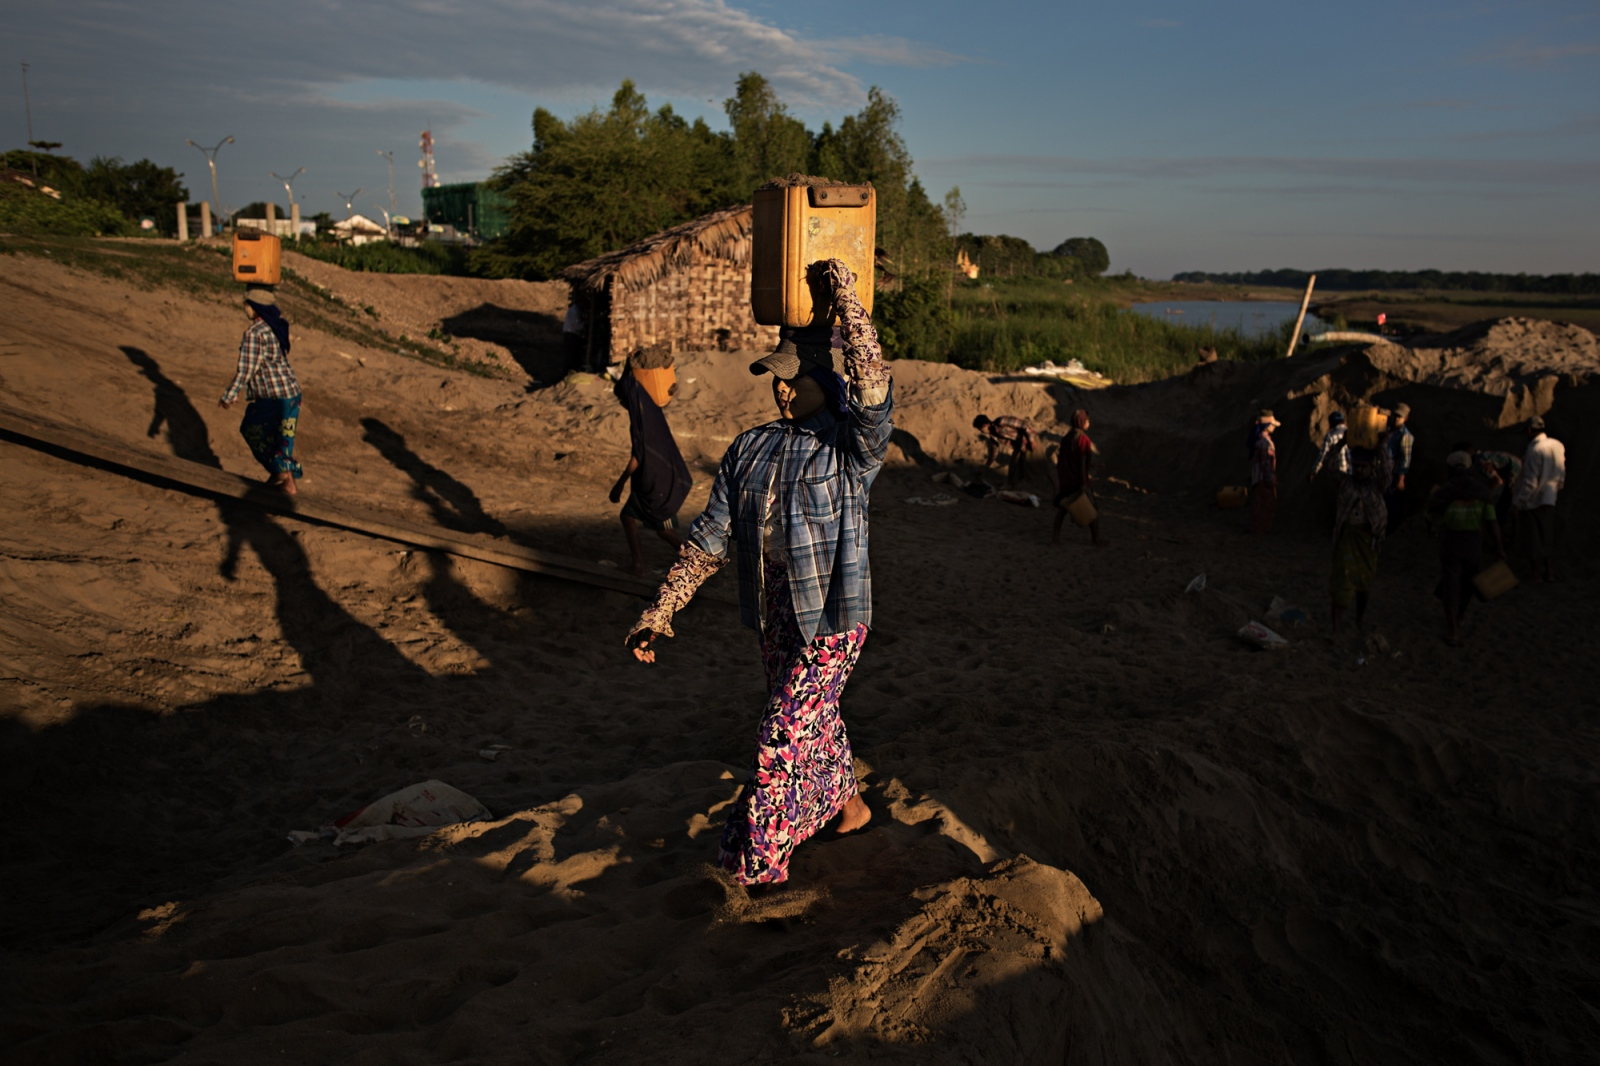 A woman carries sand to a waiting truck. Sand mining is very profitable becasue of how many uses there are for it, but it also causes a lot of environmental damage. It is not well regulated.